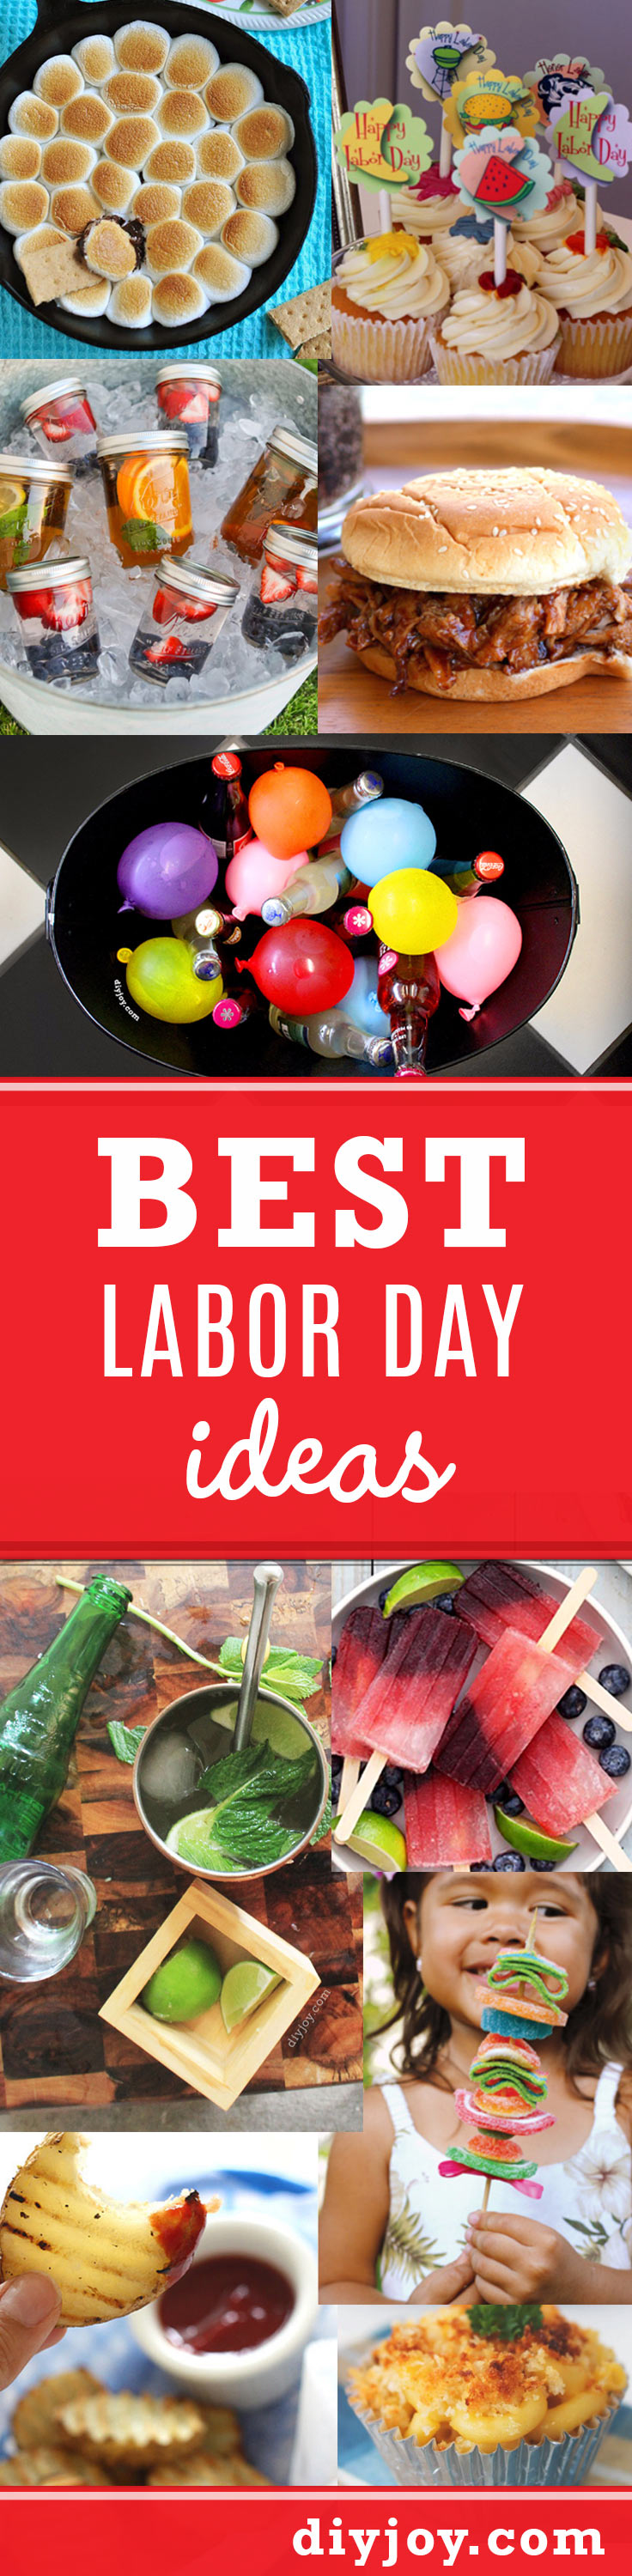 quick & easy diy ideas to make your labor day celebration special